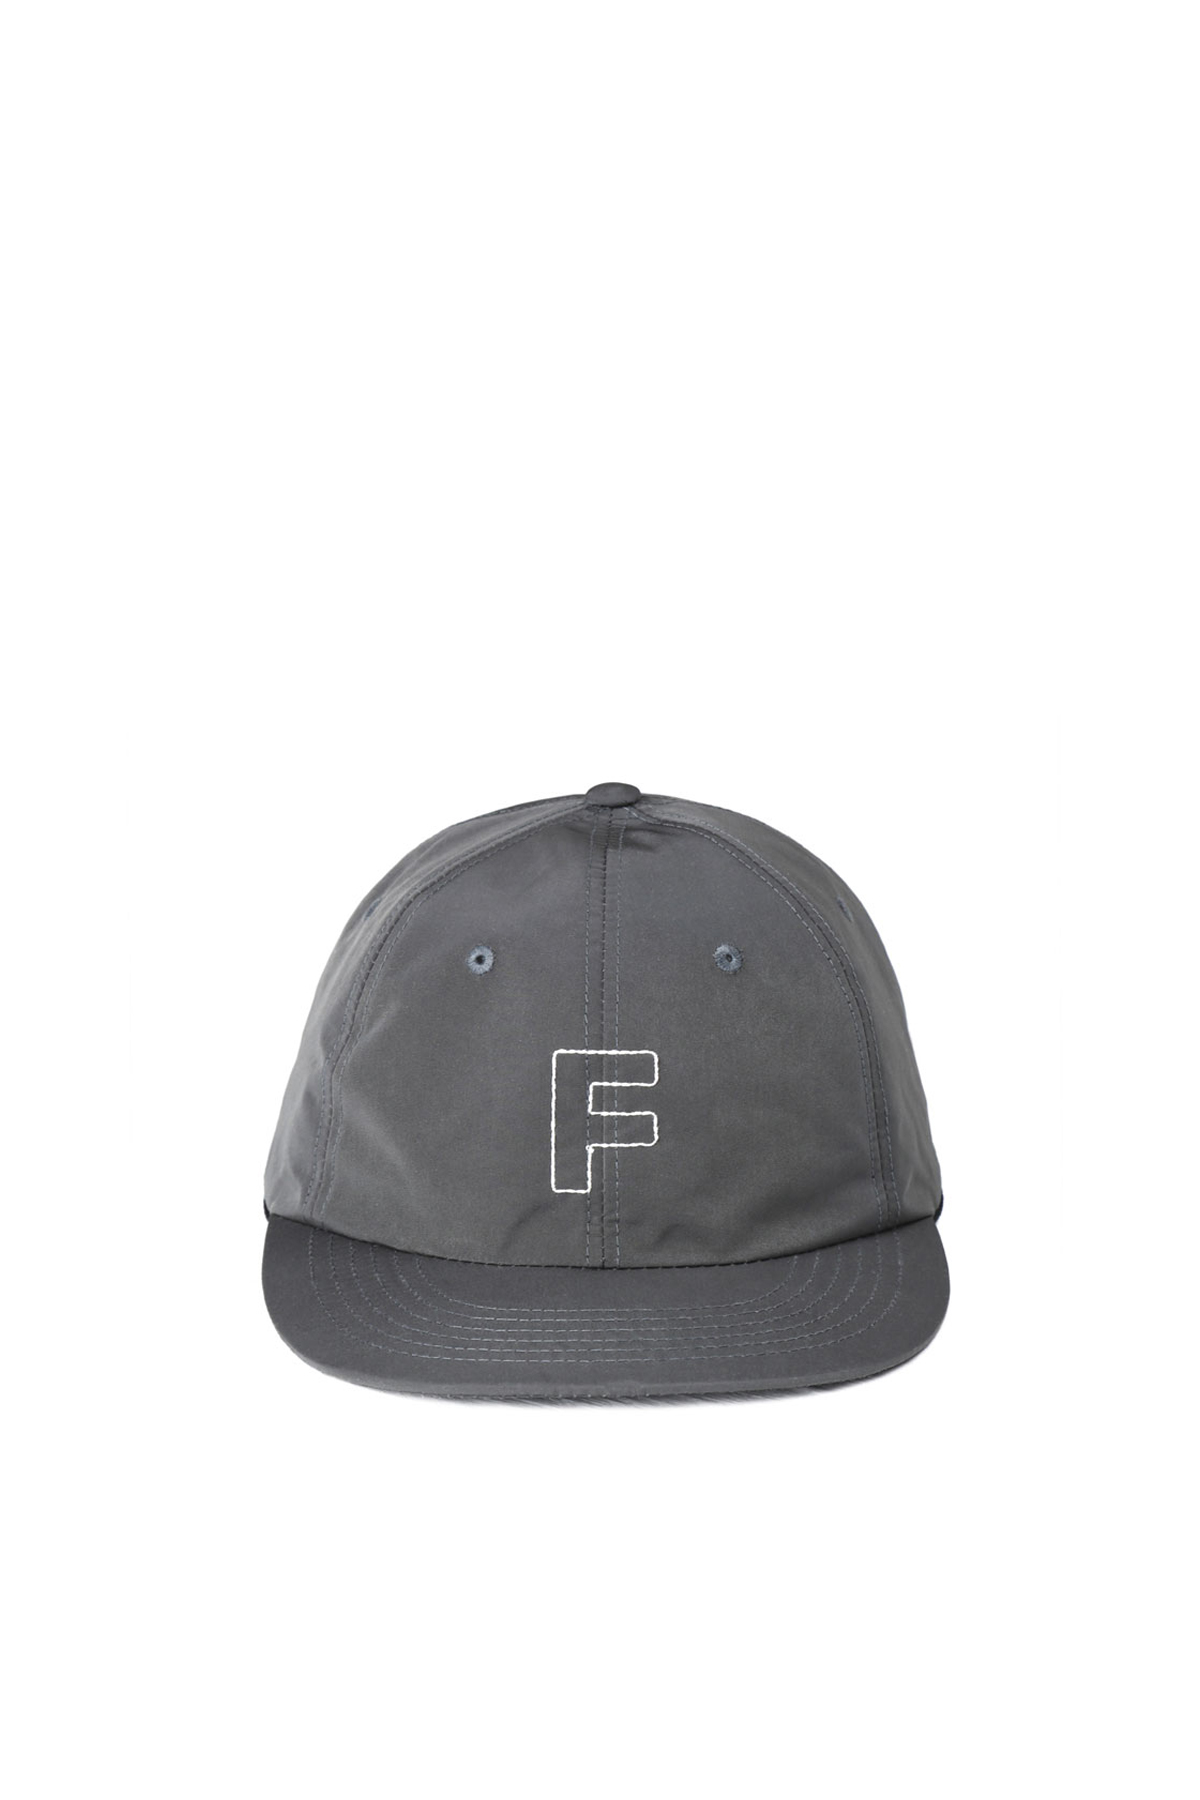 Blankof : HPN 01 C1 Ball Cap (O.Grey)